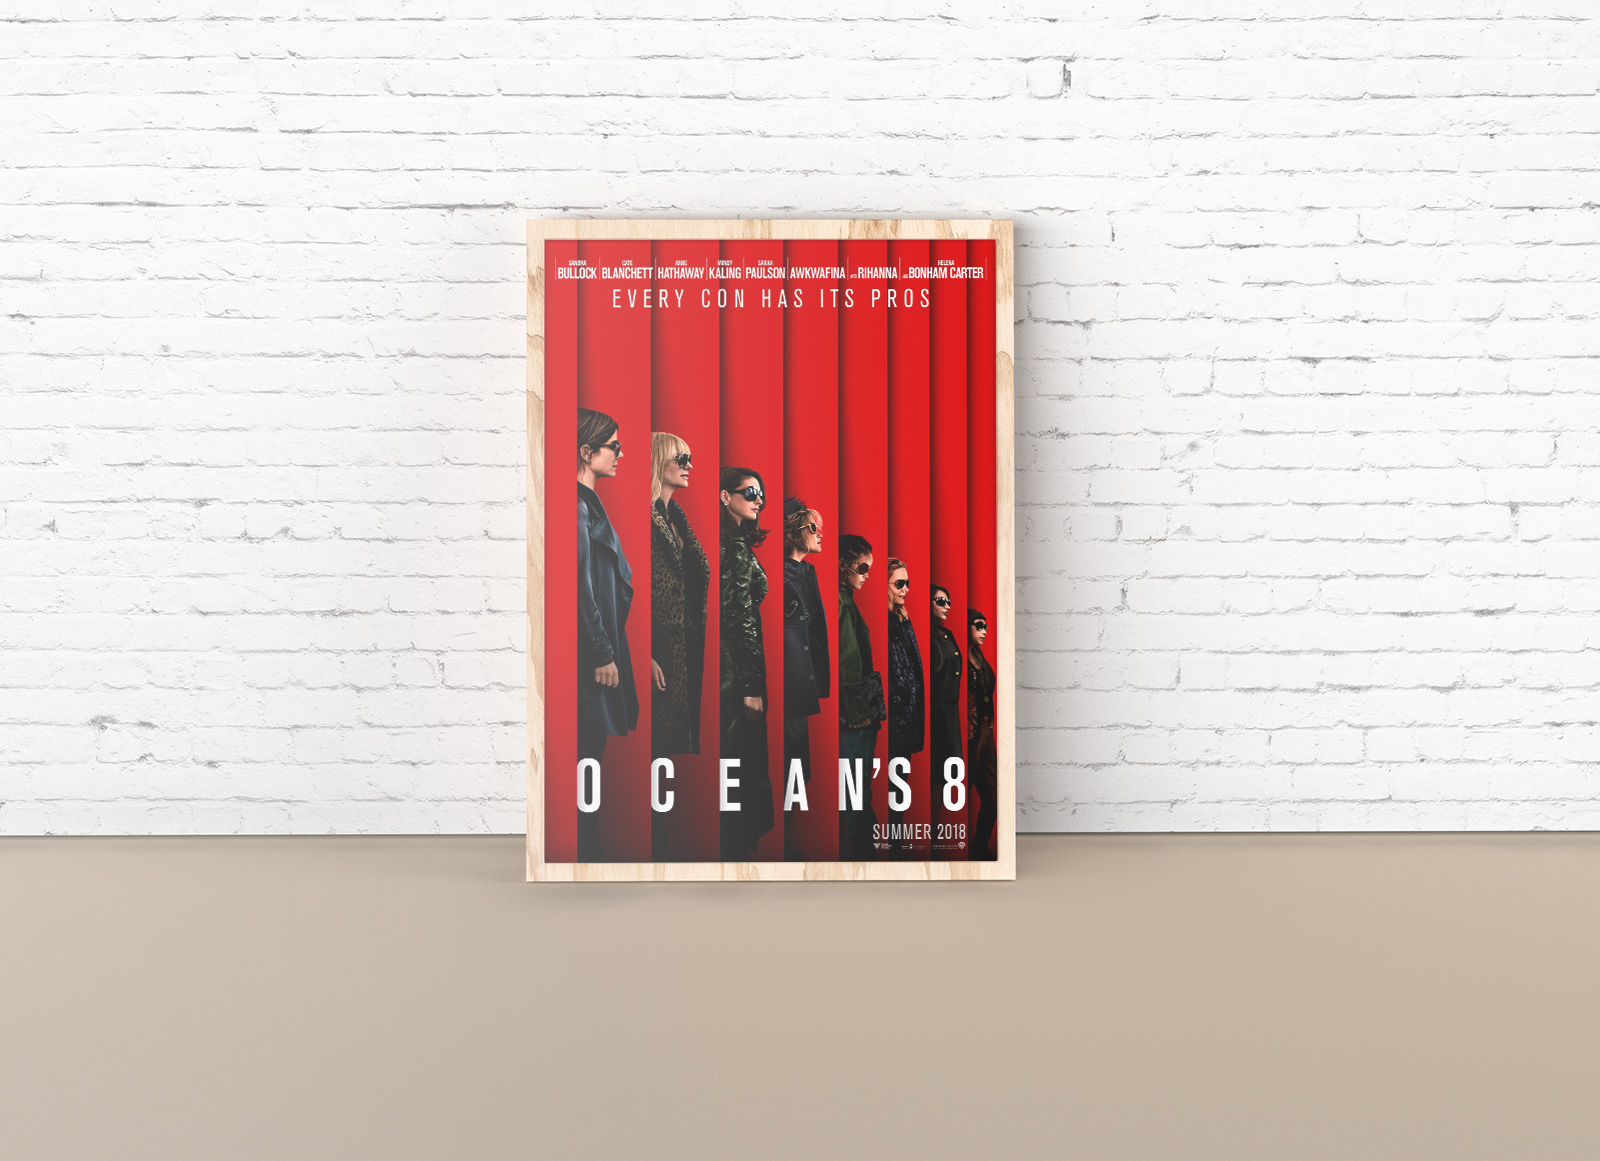 Free-Solo-Poster-Photo-Frame-Mockup-PSD